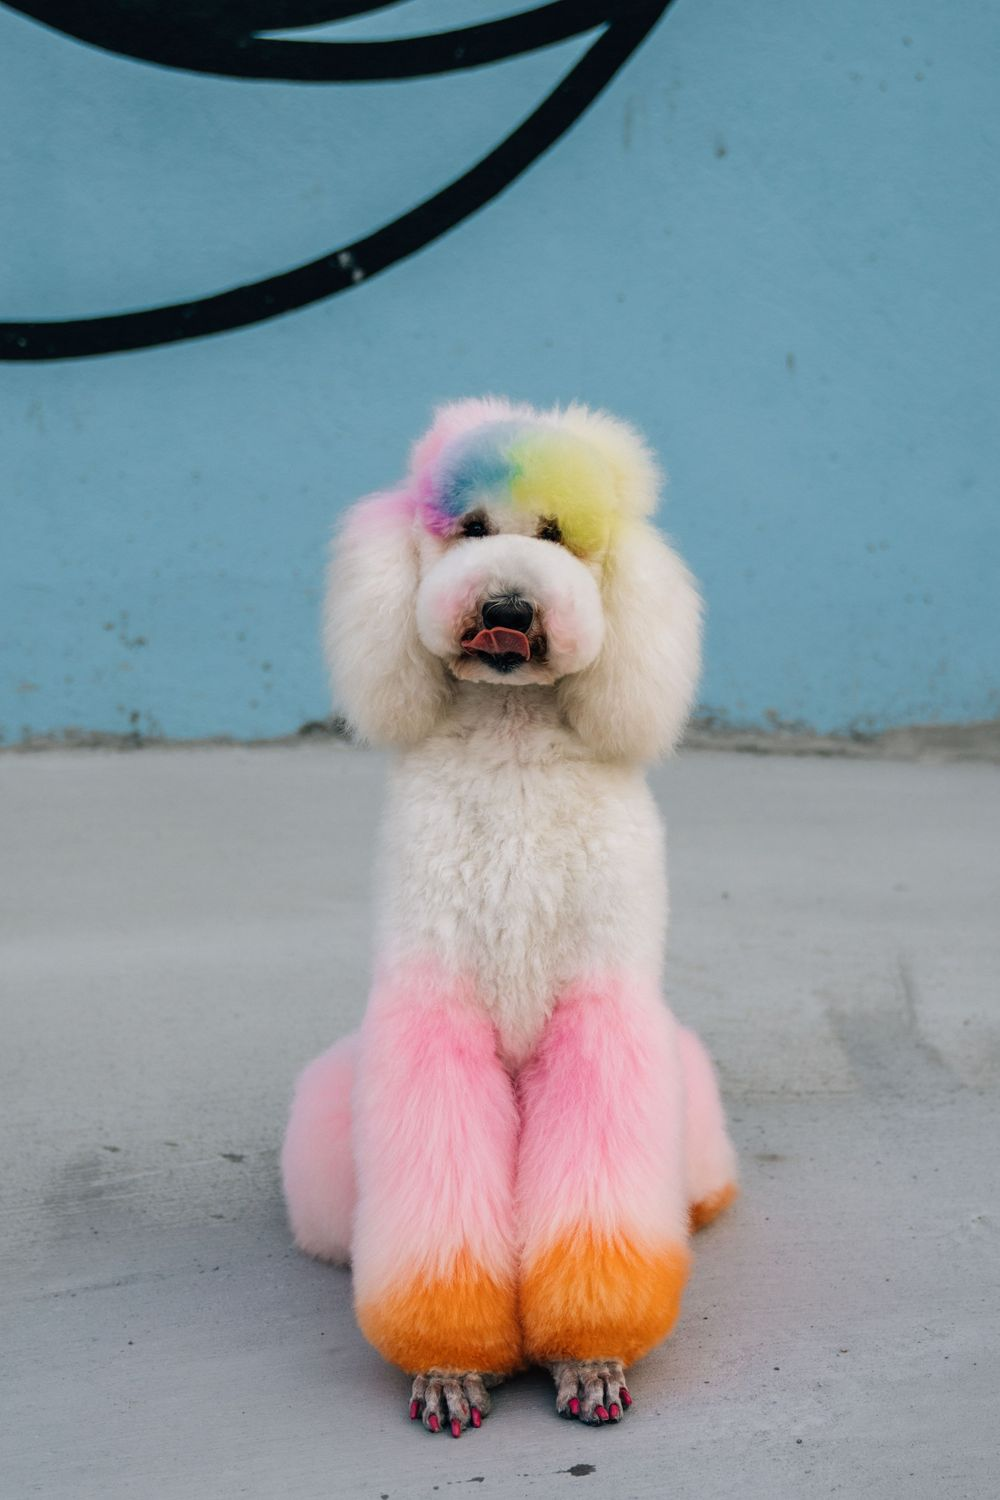 colorful poodle creative grooming over-the-rhine findlay market cincinnati pet photographer dog photography dayton